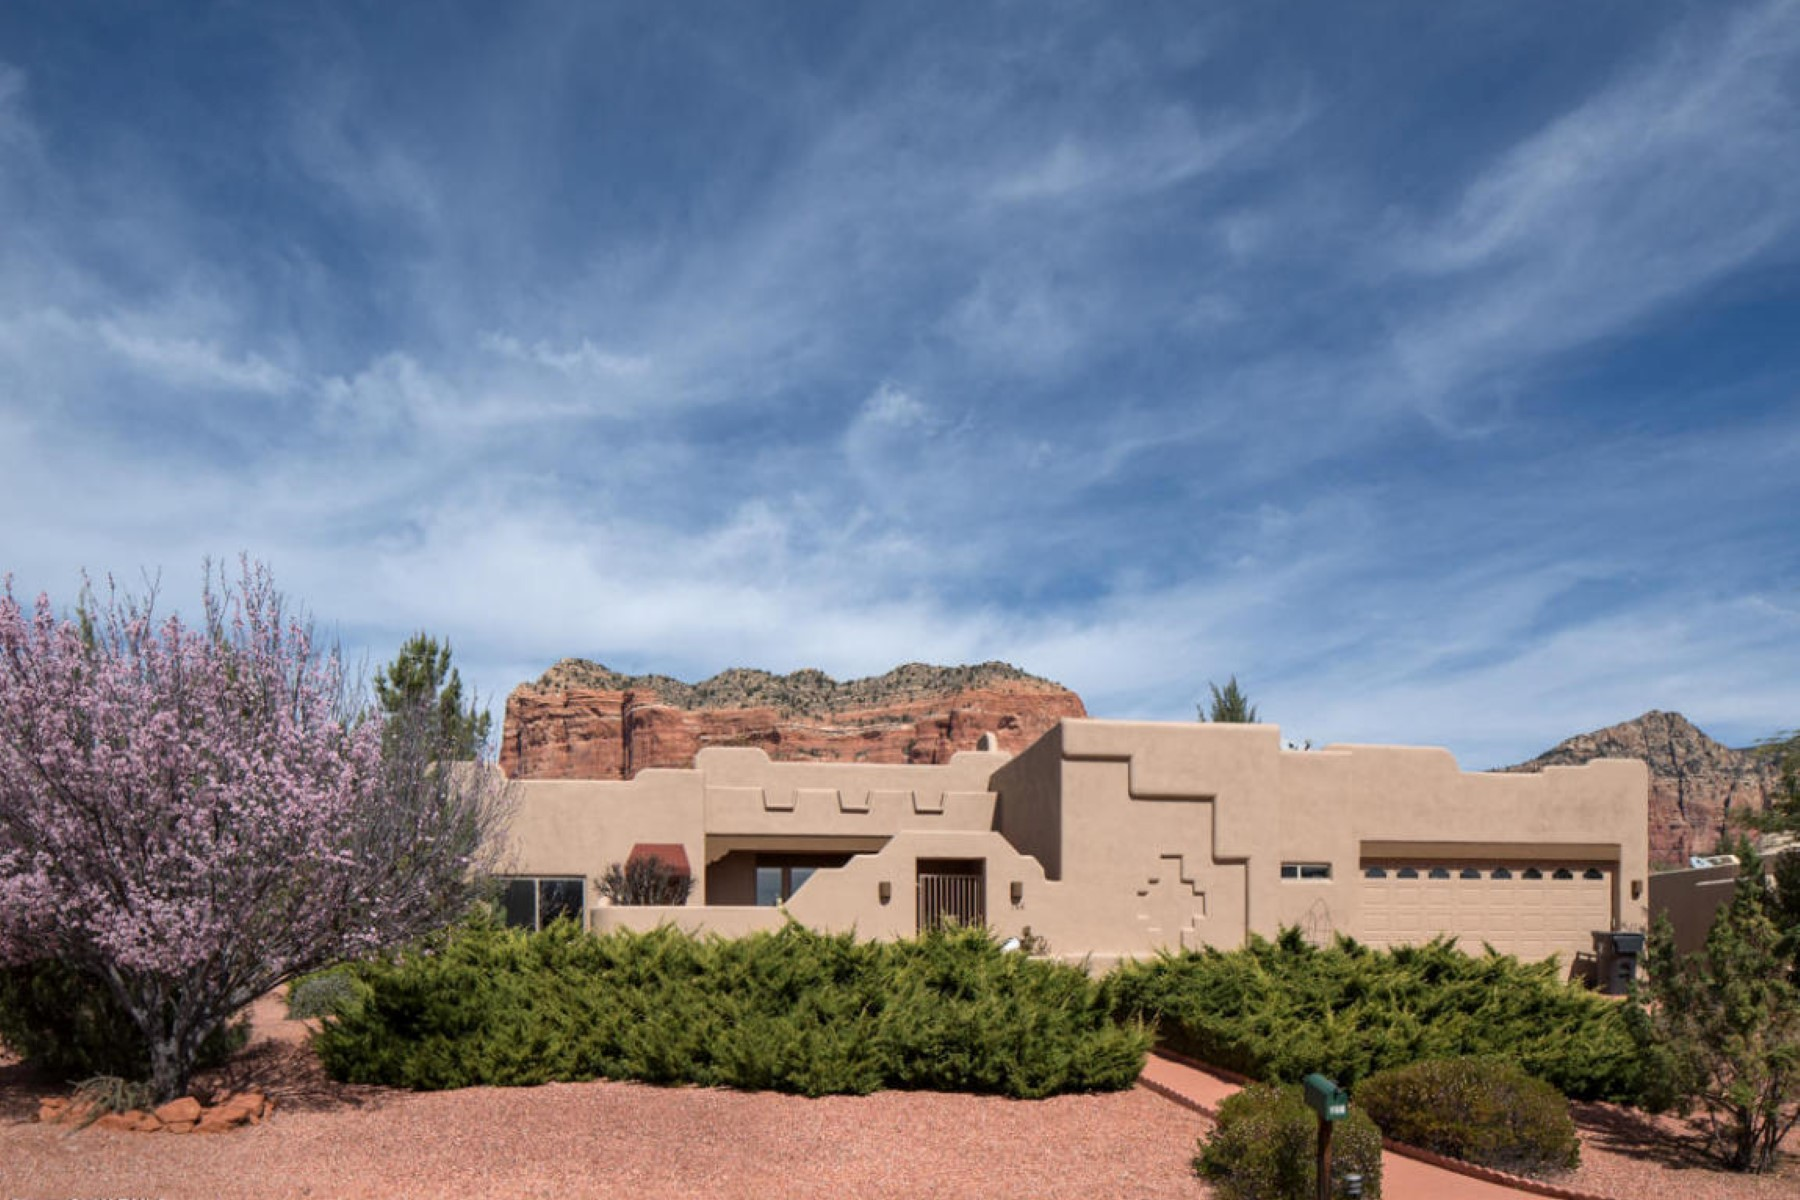 Single Family Home for Sale at Open Southwest design 166 Pinon Woods Drive Sedona, Arizona, 86351 United States